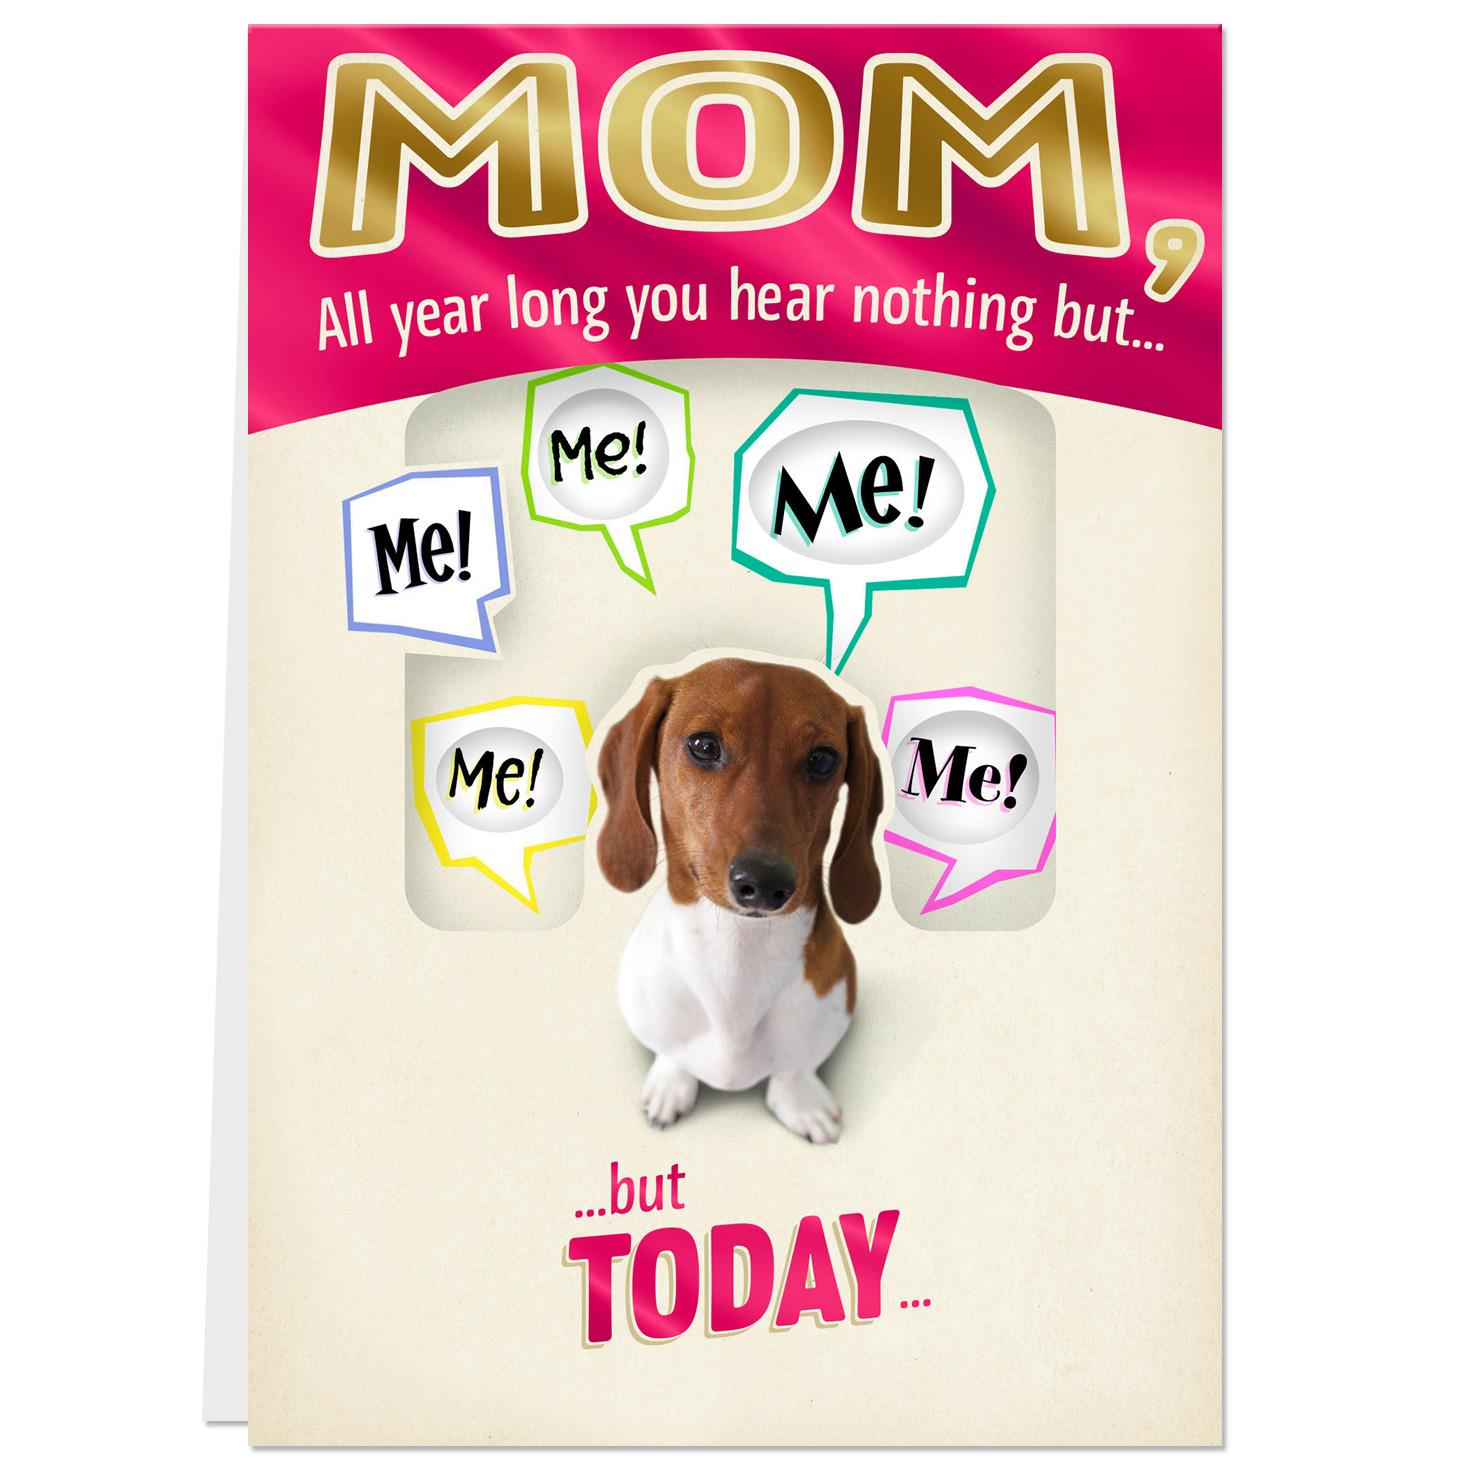 All About You Dog Funny Birthday Card For Mom Greeting Cards